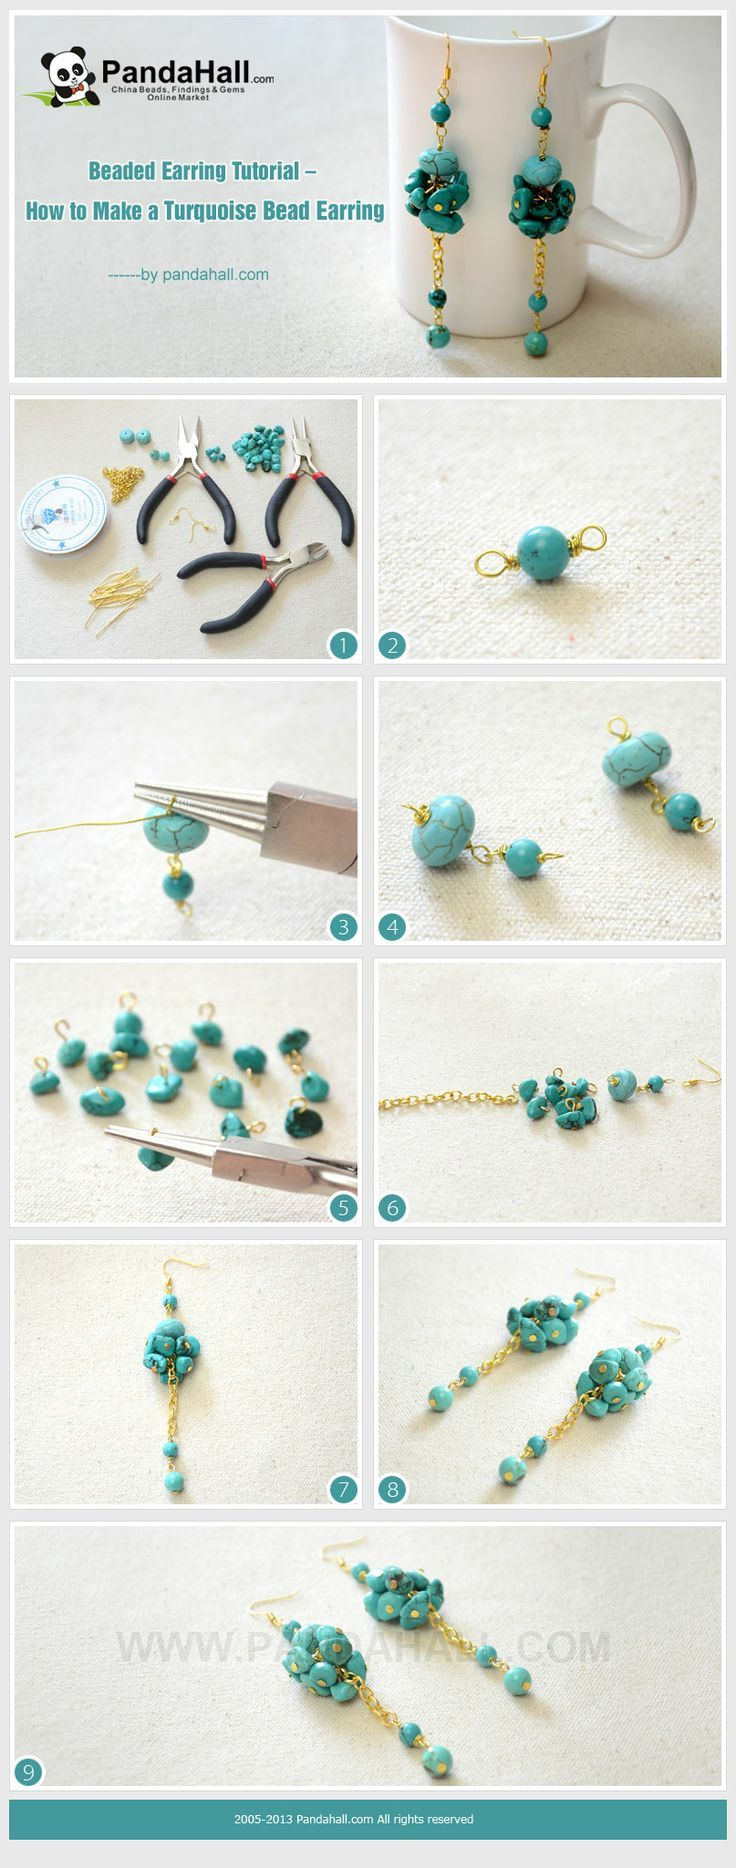 Beaded Earring Tutorial - How to Make Long and Clustered Turquoise Bead Earrings from pandahall.com